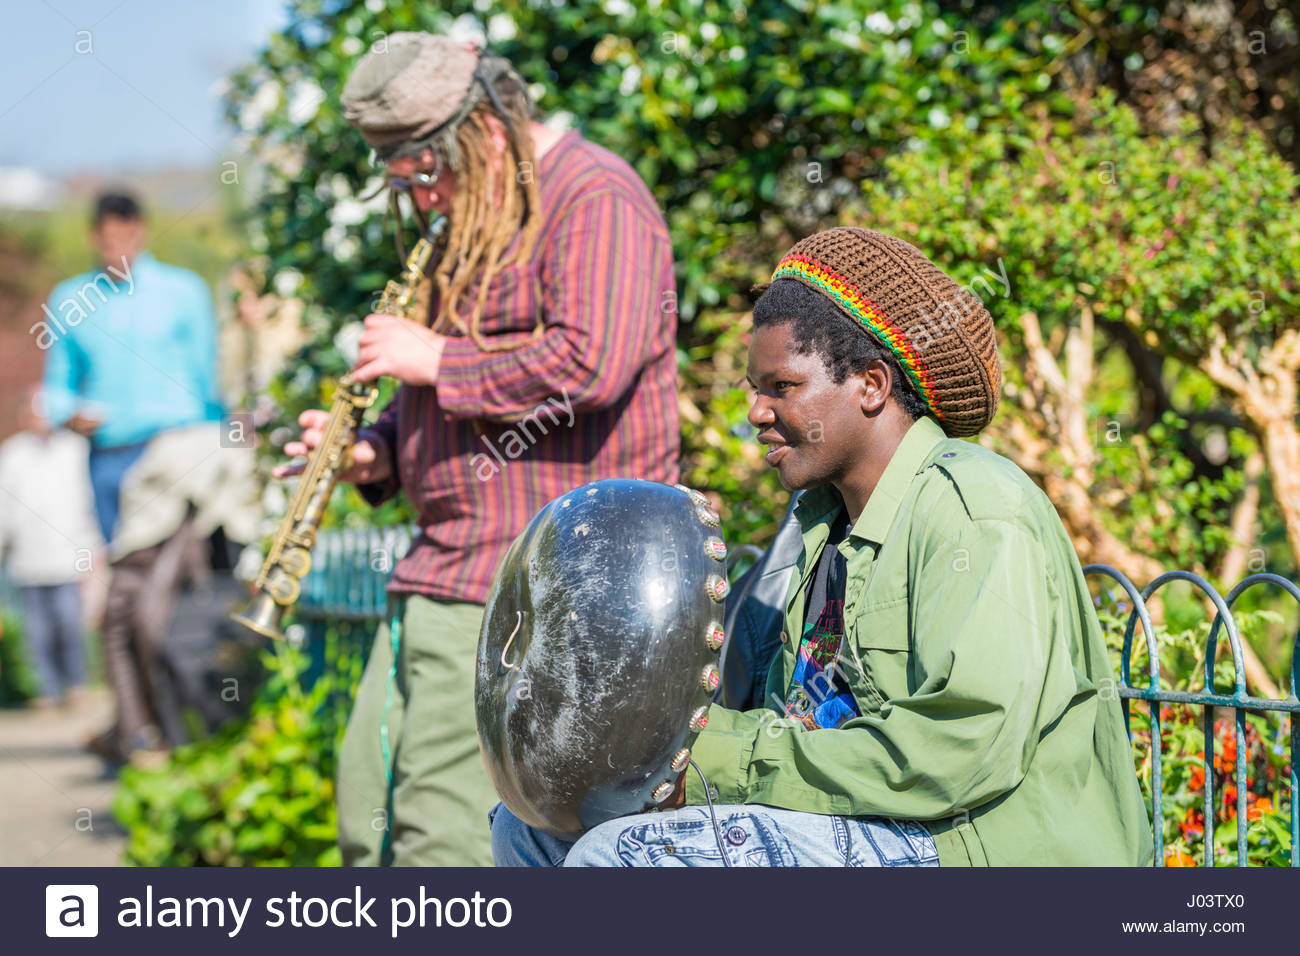 pair-of-buskers-playing-instruments-in-a